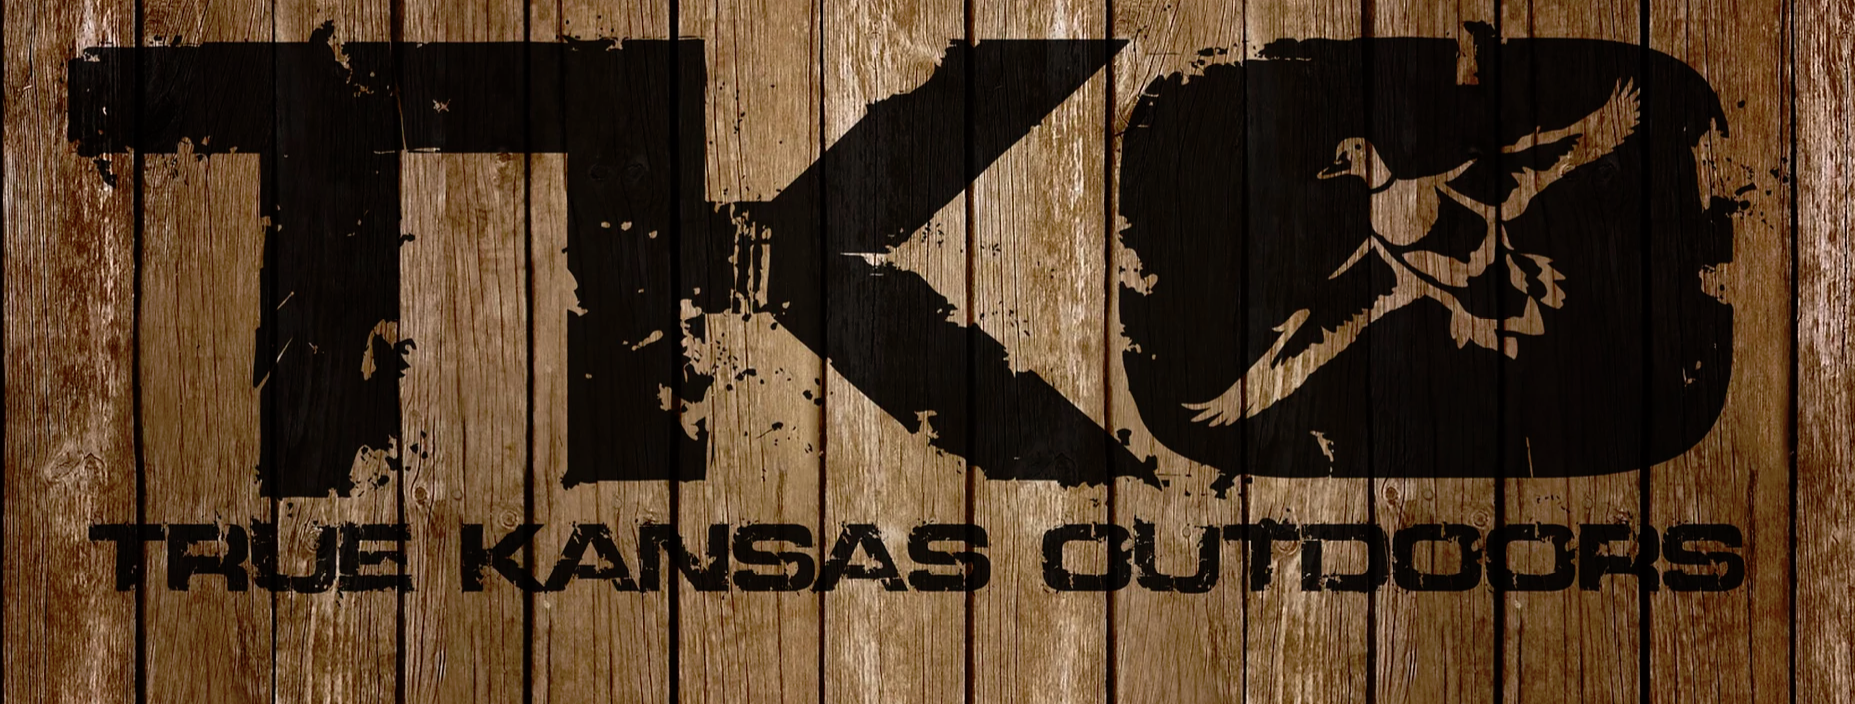 true-kansas-outdoors-15609689091479489936